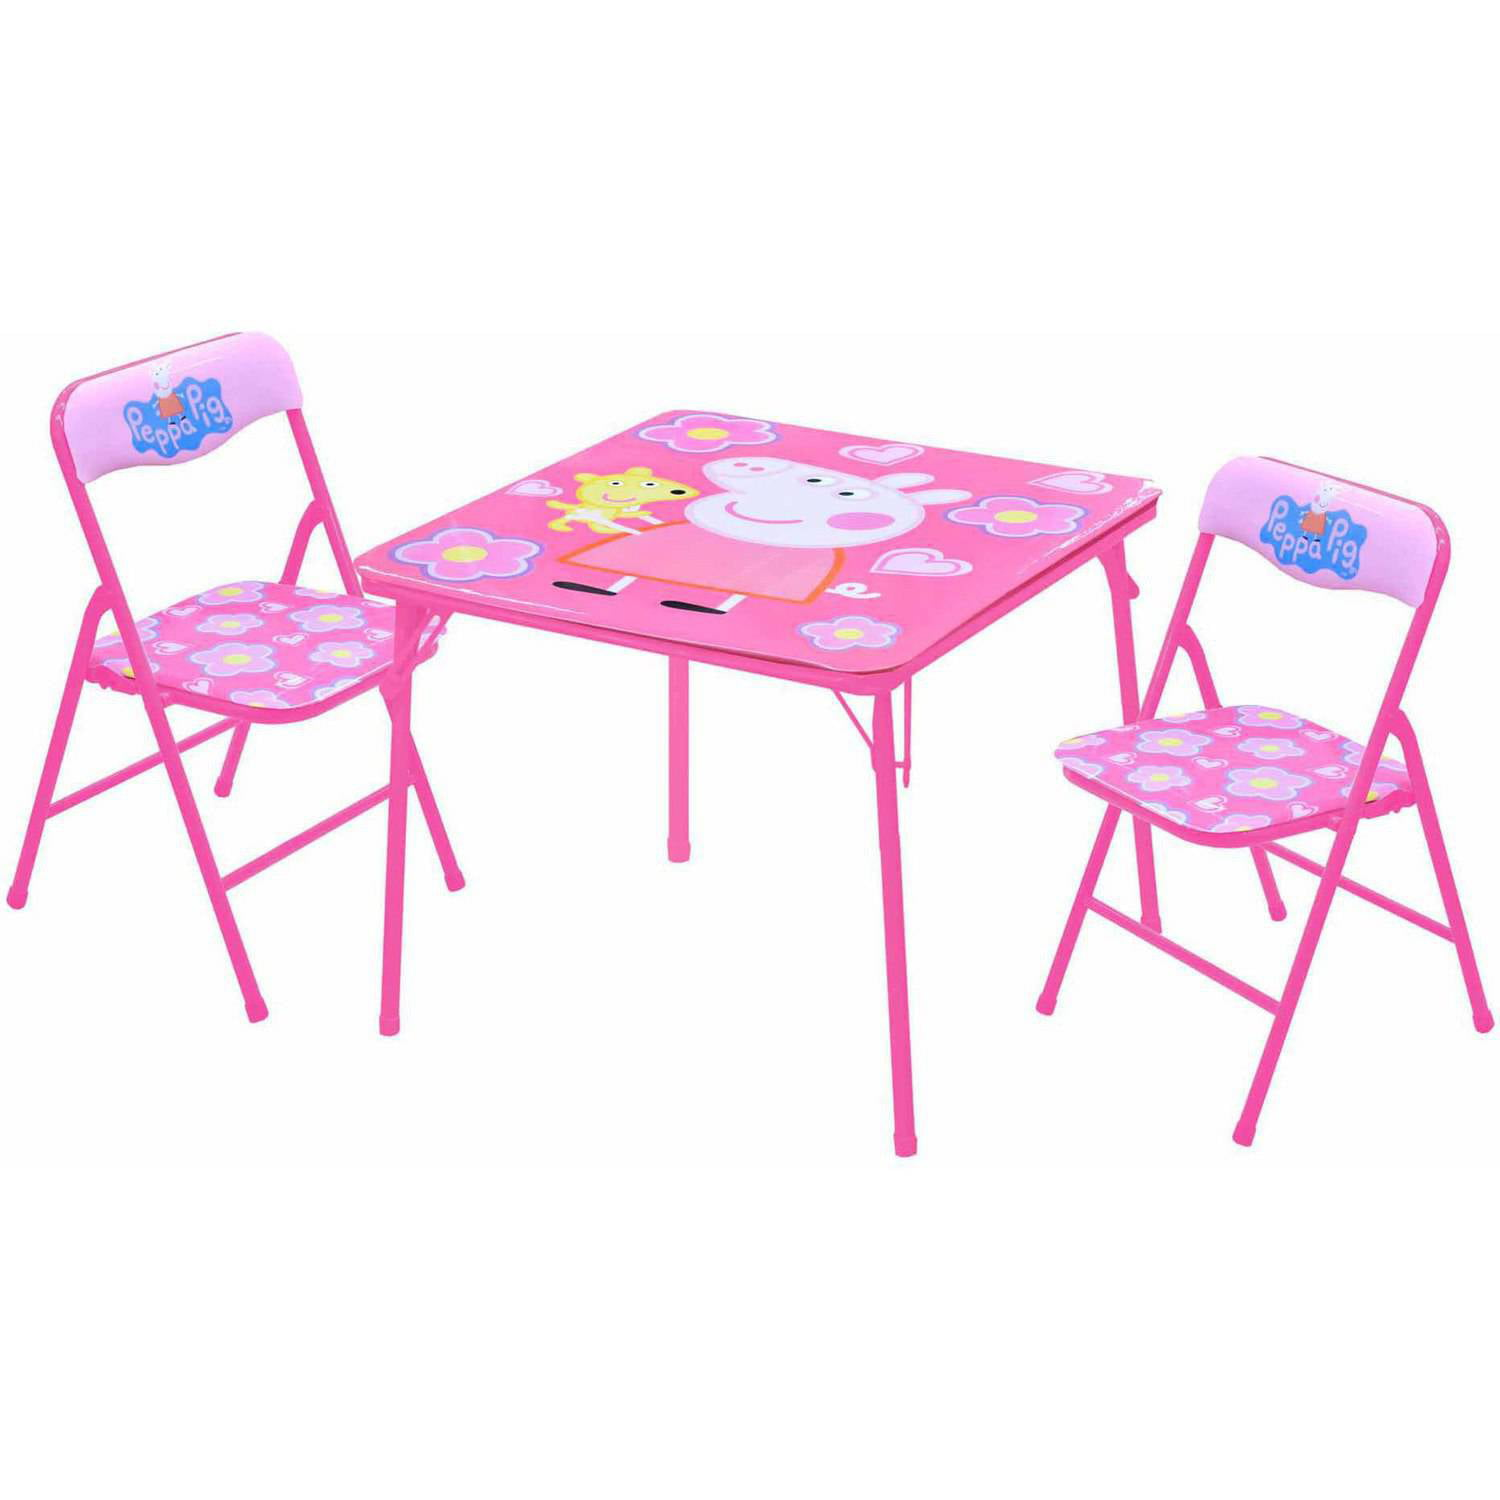 Peppa Pig Table and Chairs Set Walmartcom